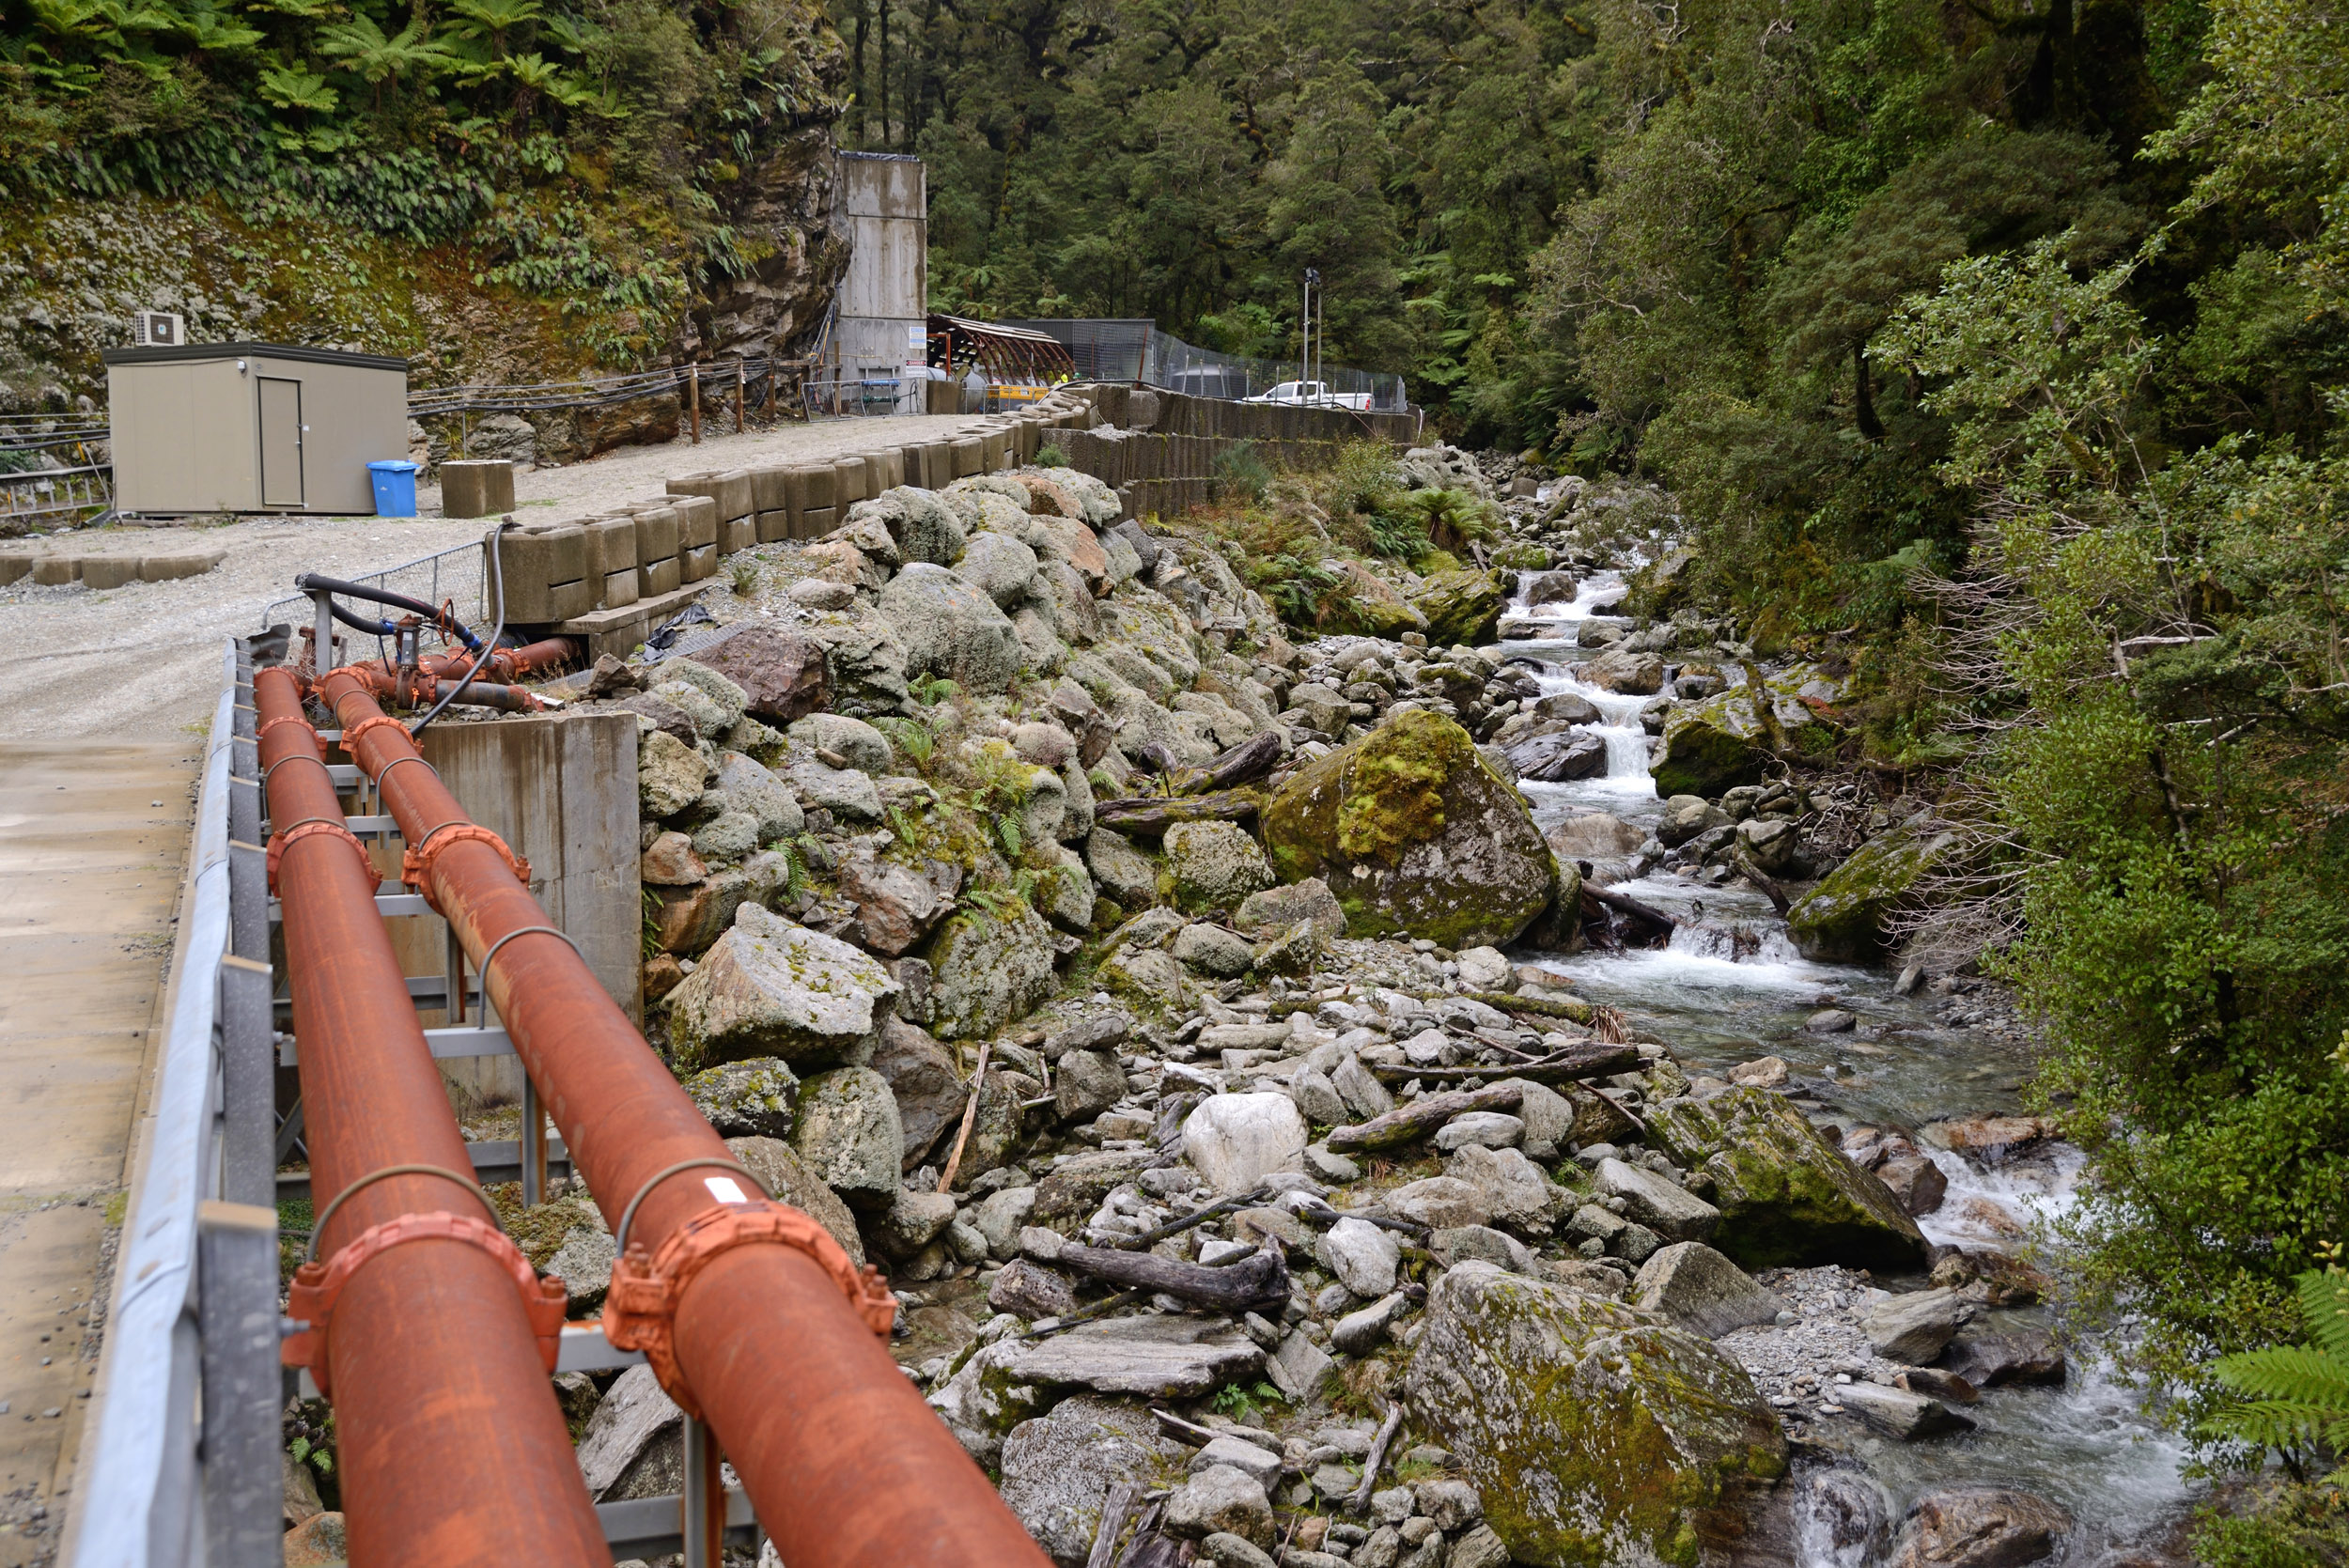 Obama enacts law to protect streams and forests from coal mining